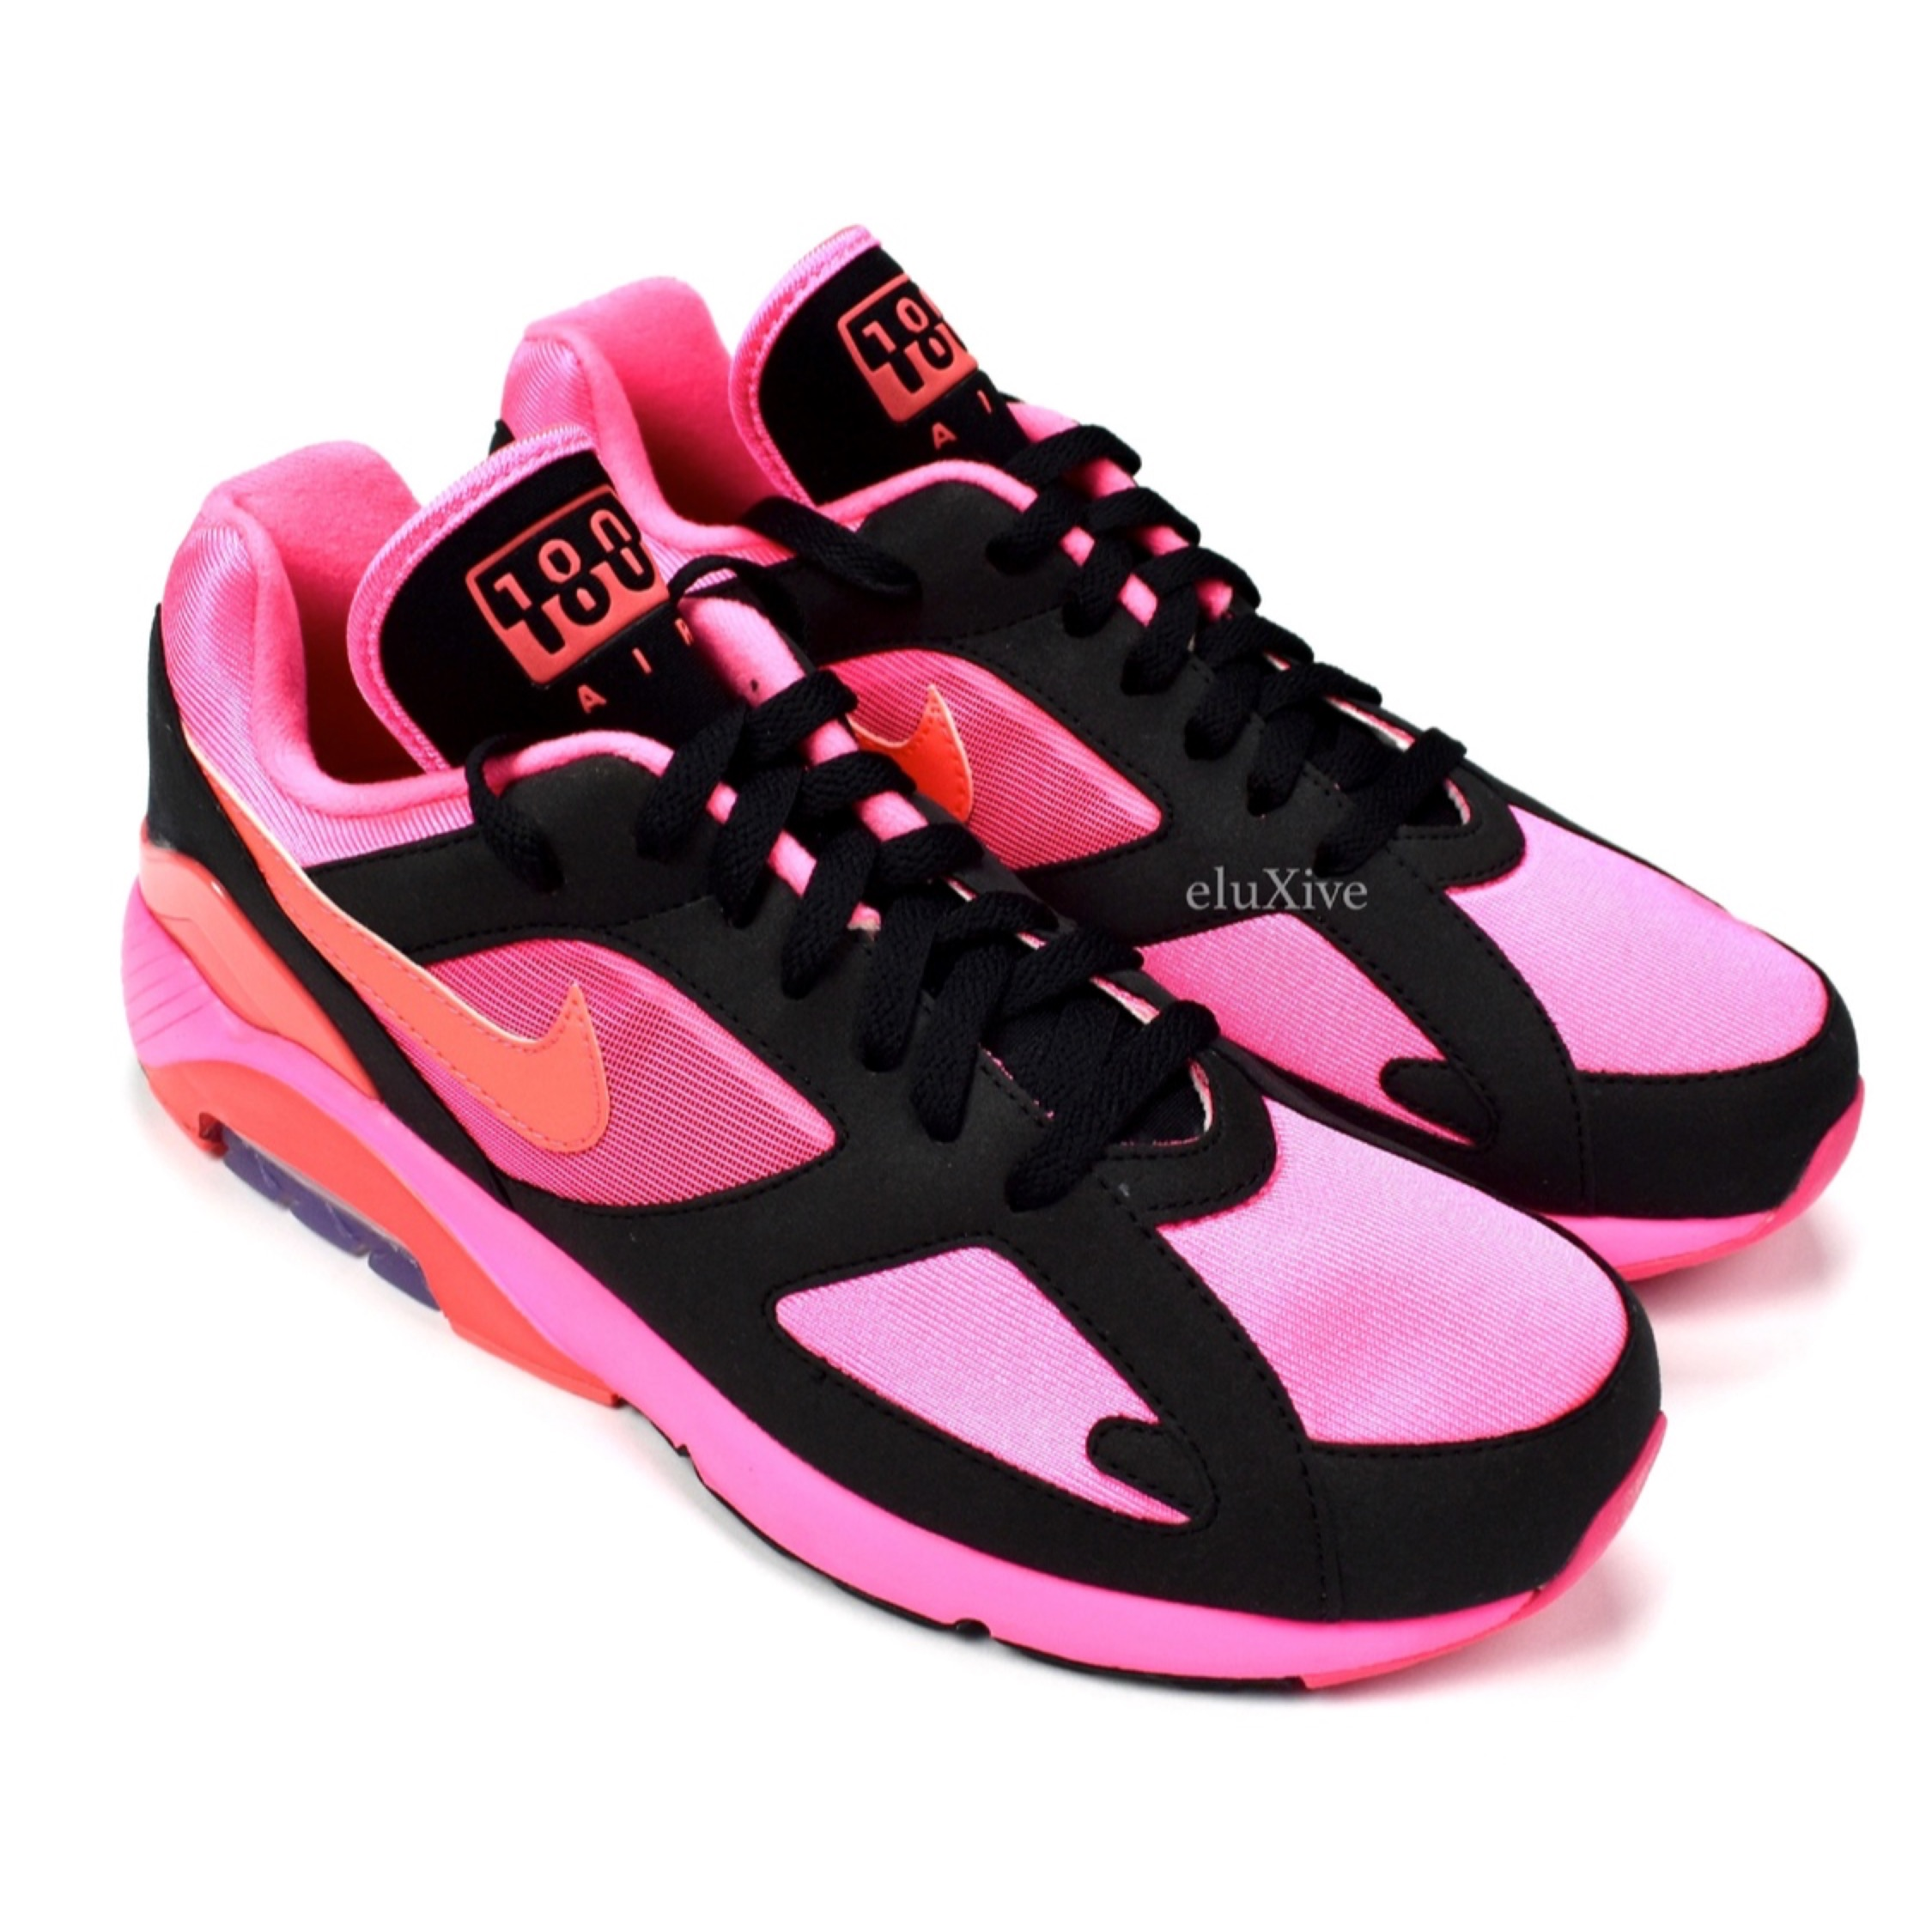 Comme Des Garcons X Nike Air Max 180 New 11